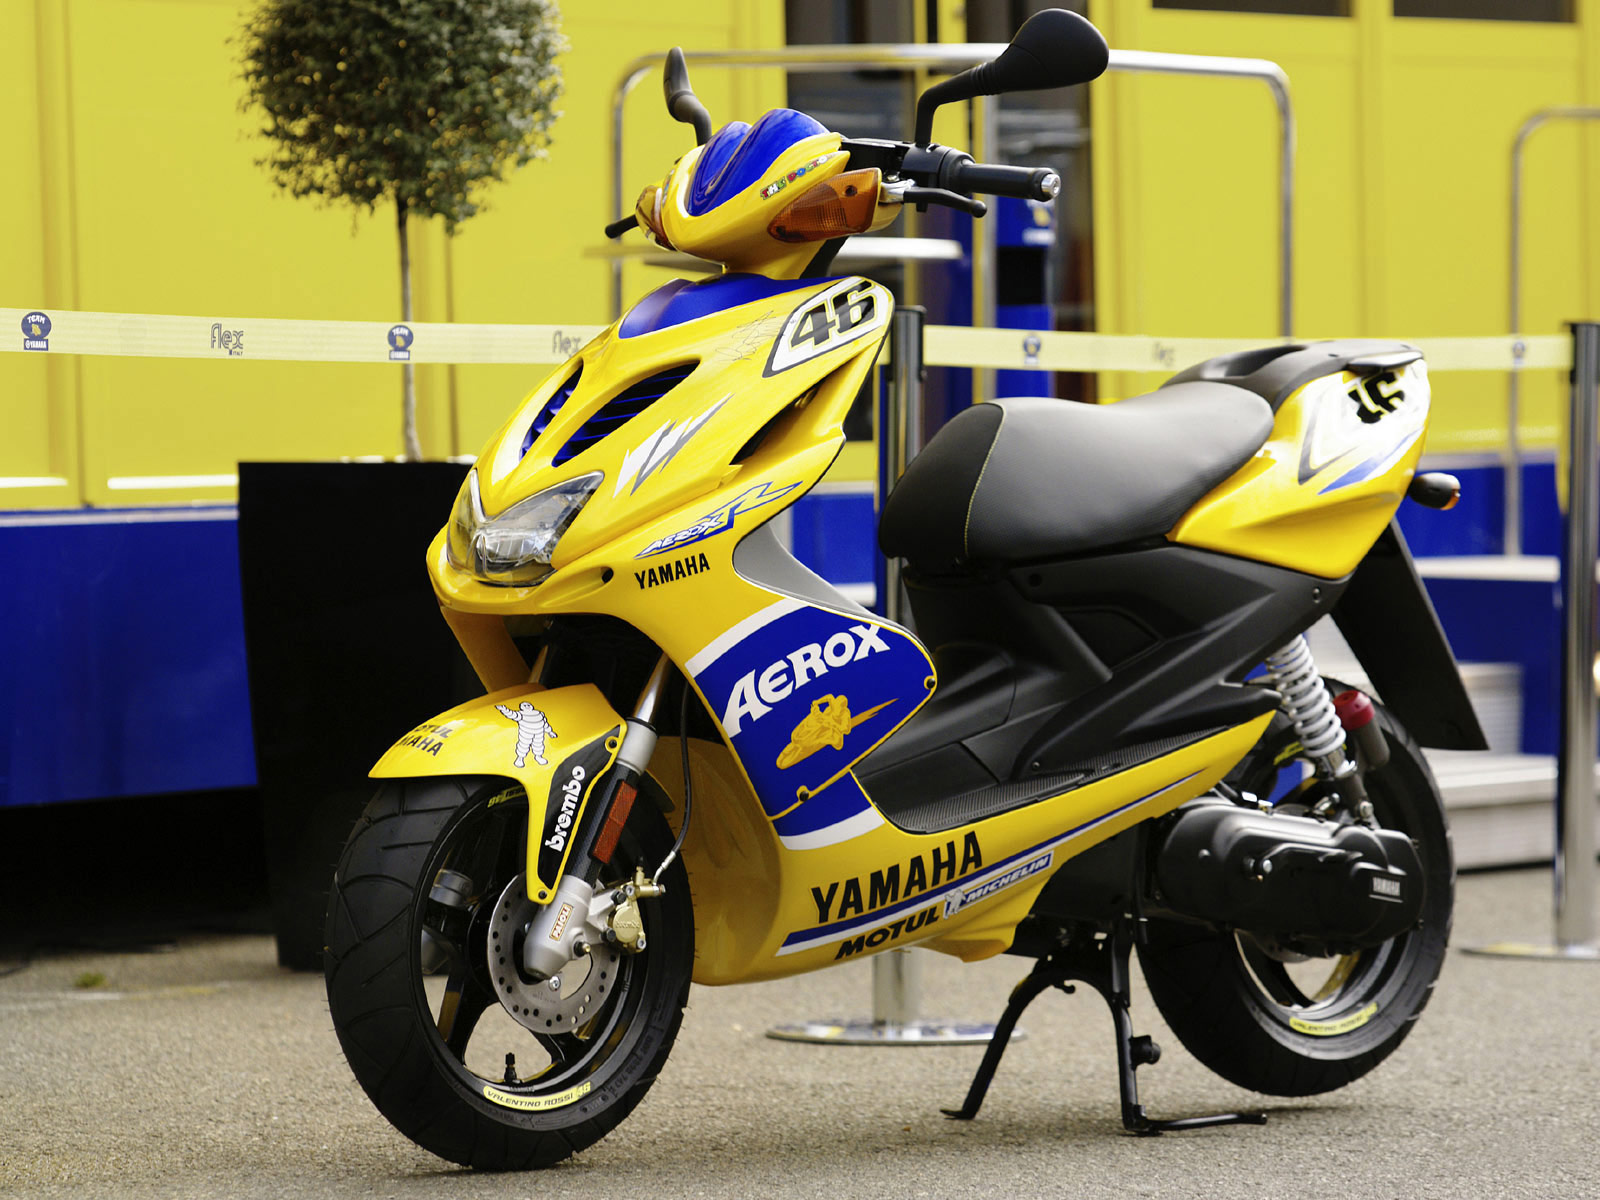 Yamaha Aerox Race Replica 2006 #3